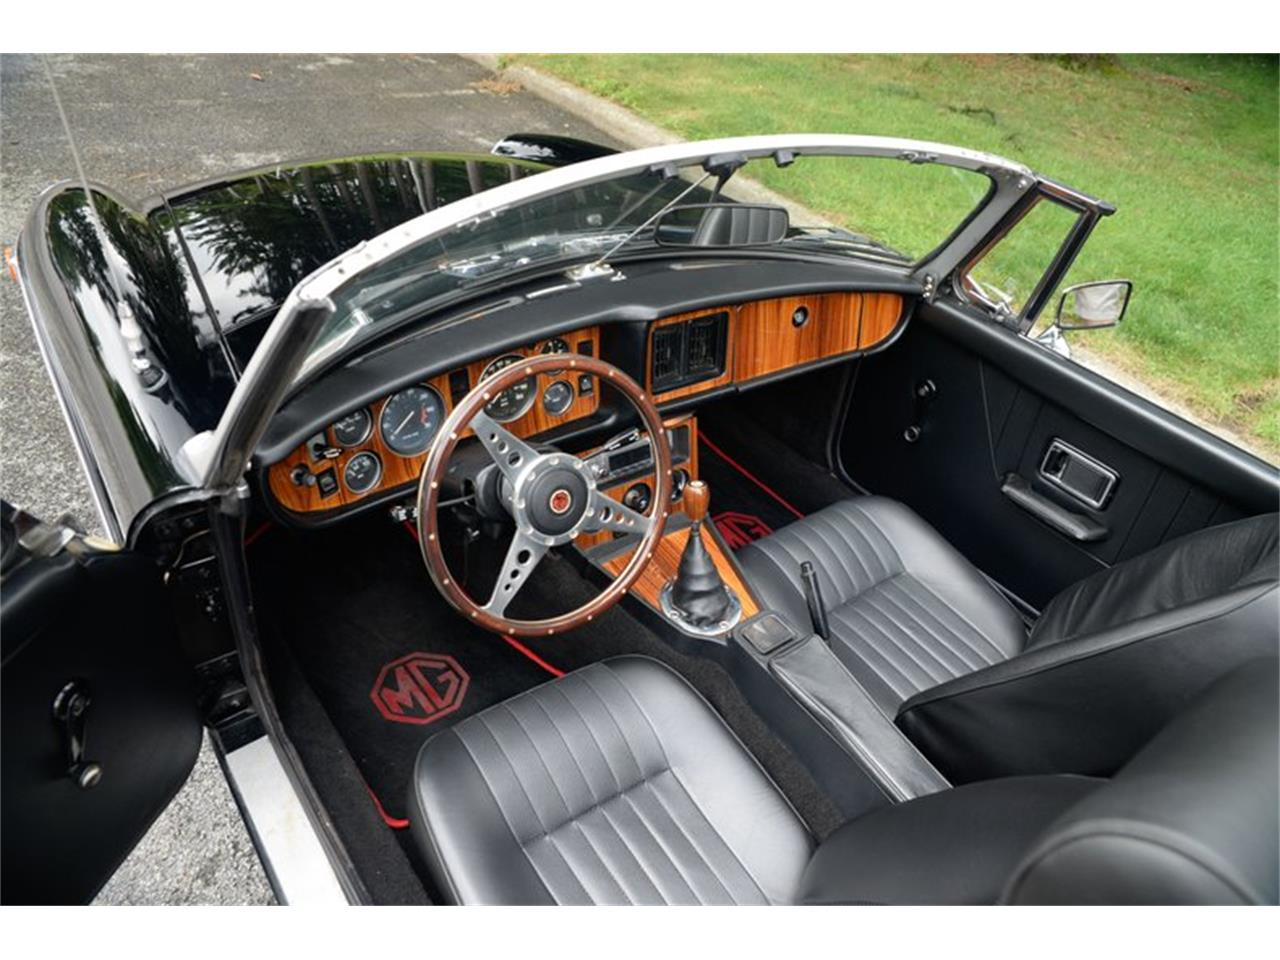 Large Picture of 1979 MGB located in Saratoga Springs New York Auction Vehicle Offered by Saratoga Auto Auction - R18T